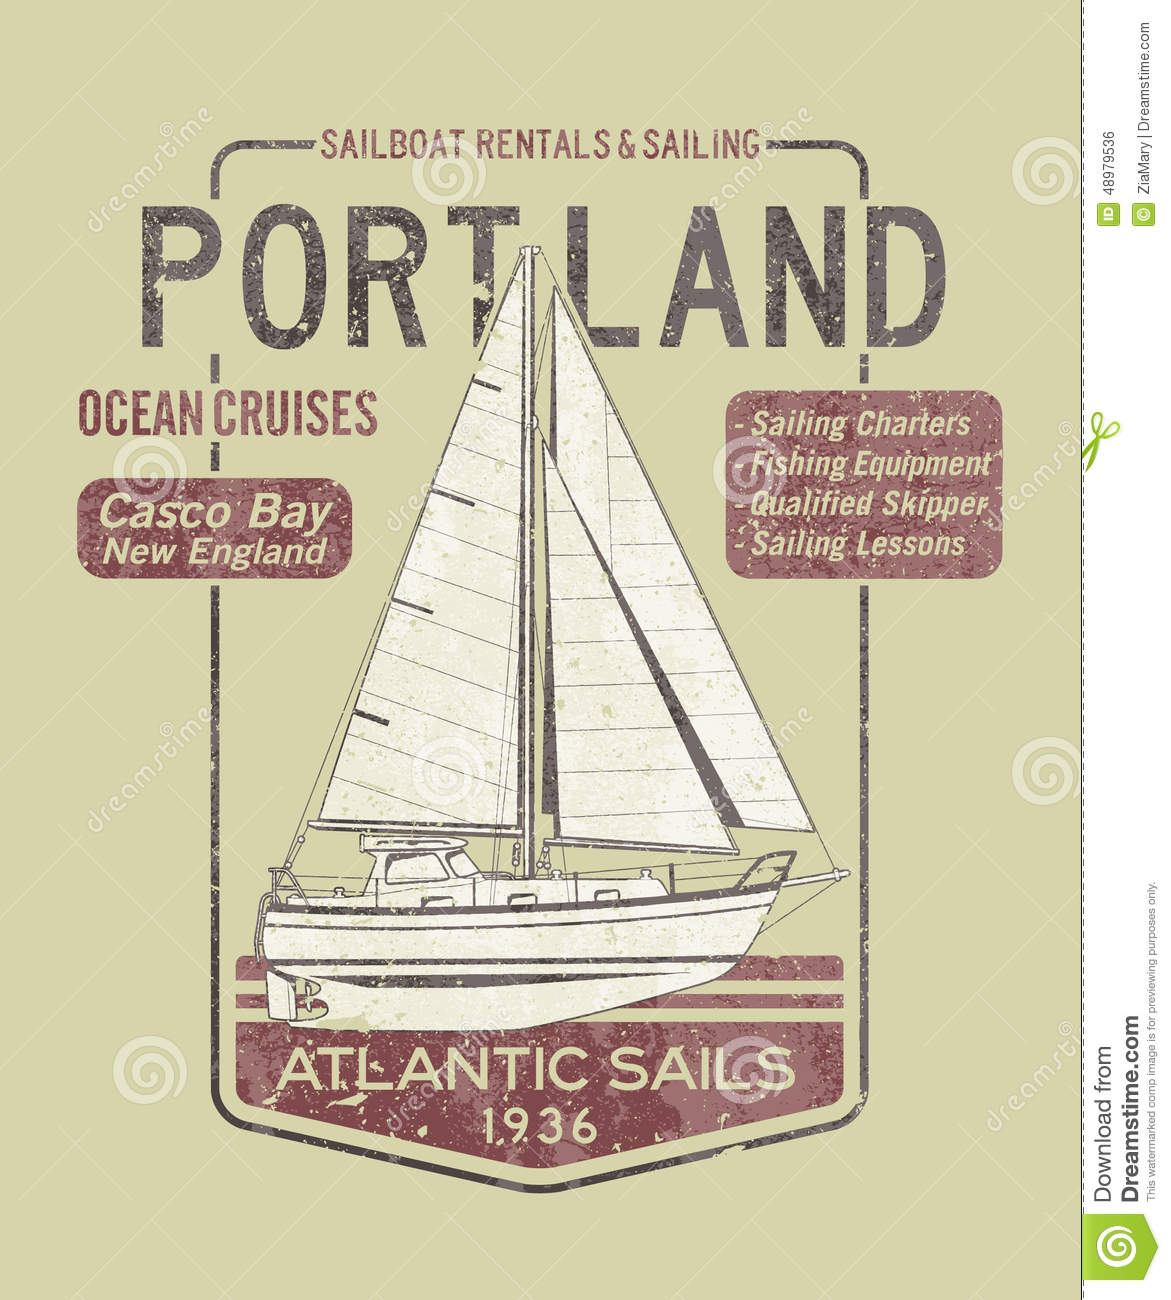 Atlantic Ocean Sailing. Stock Vector. Illustration Of Boat